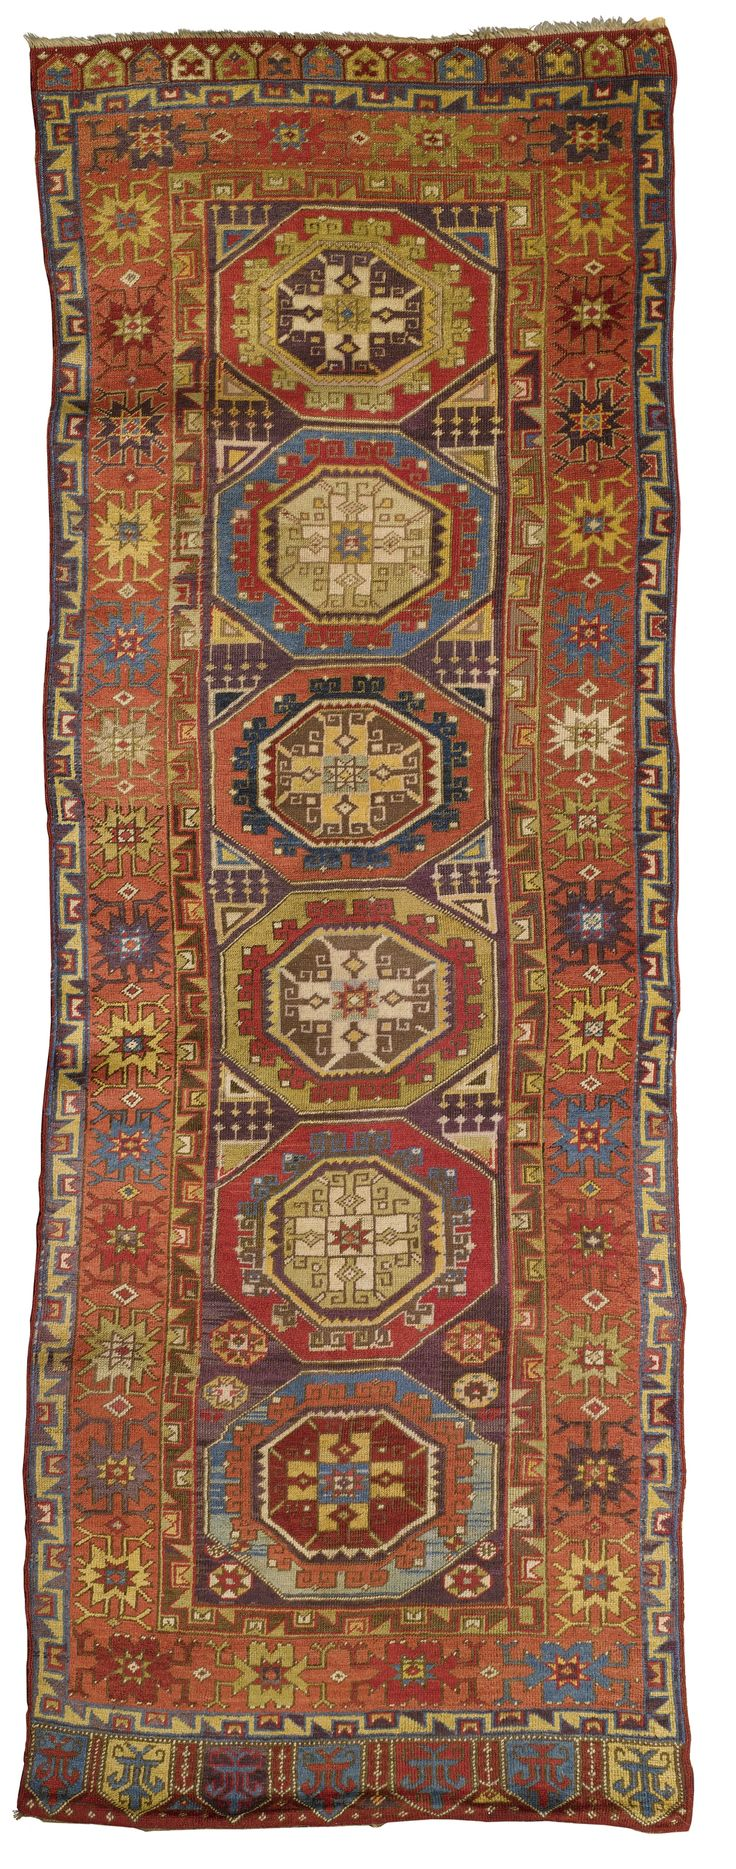 Central Anatolian runner approximately 10ft. 3in. by 3ft. 9in. (3.12 by 1.14m.) circa 1890